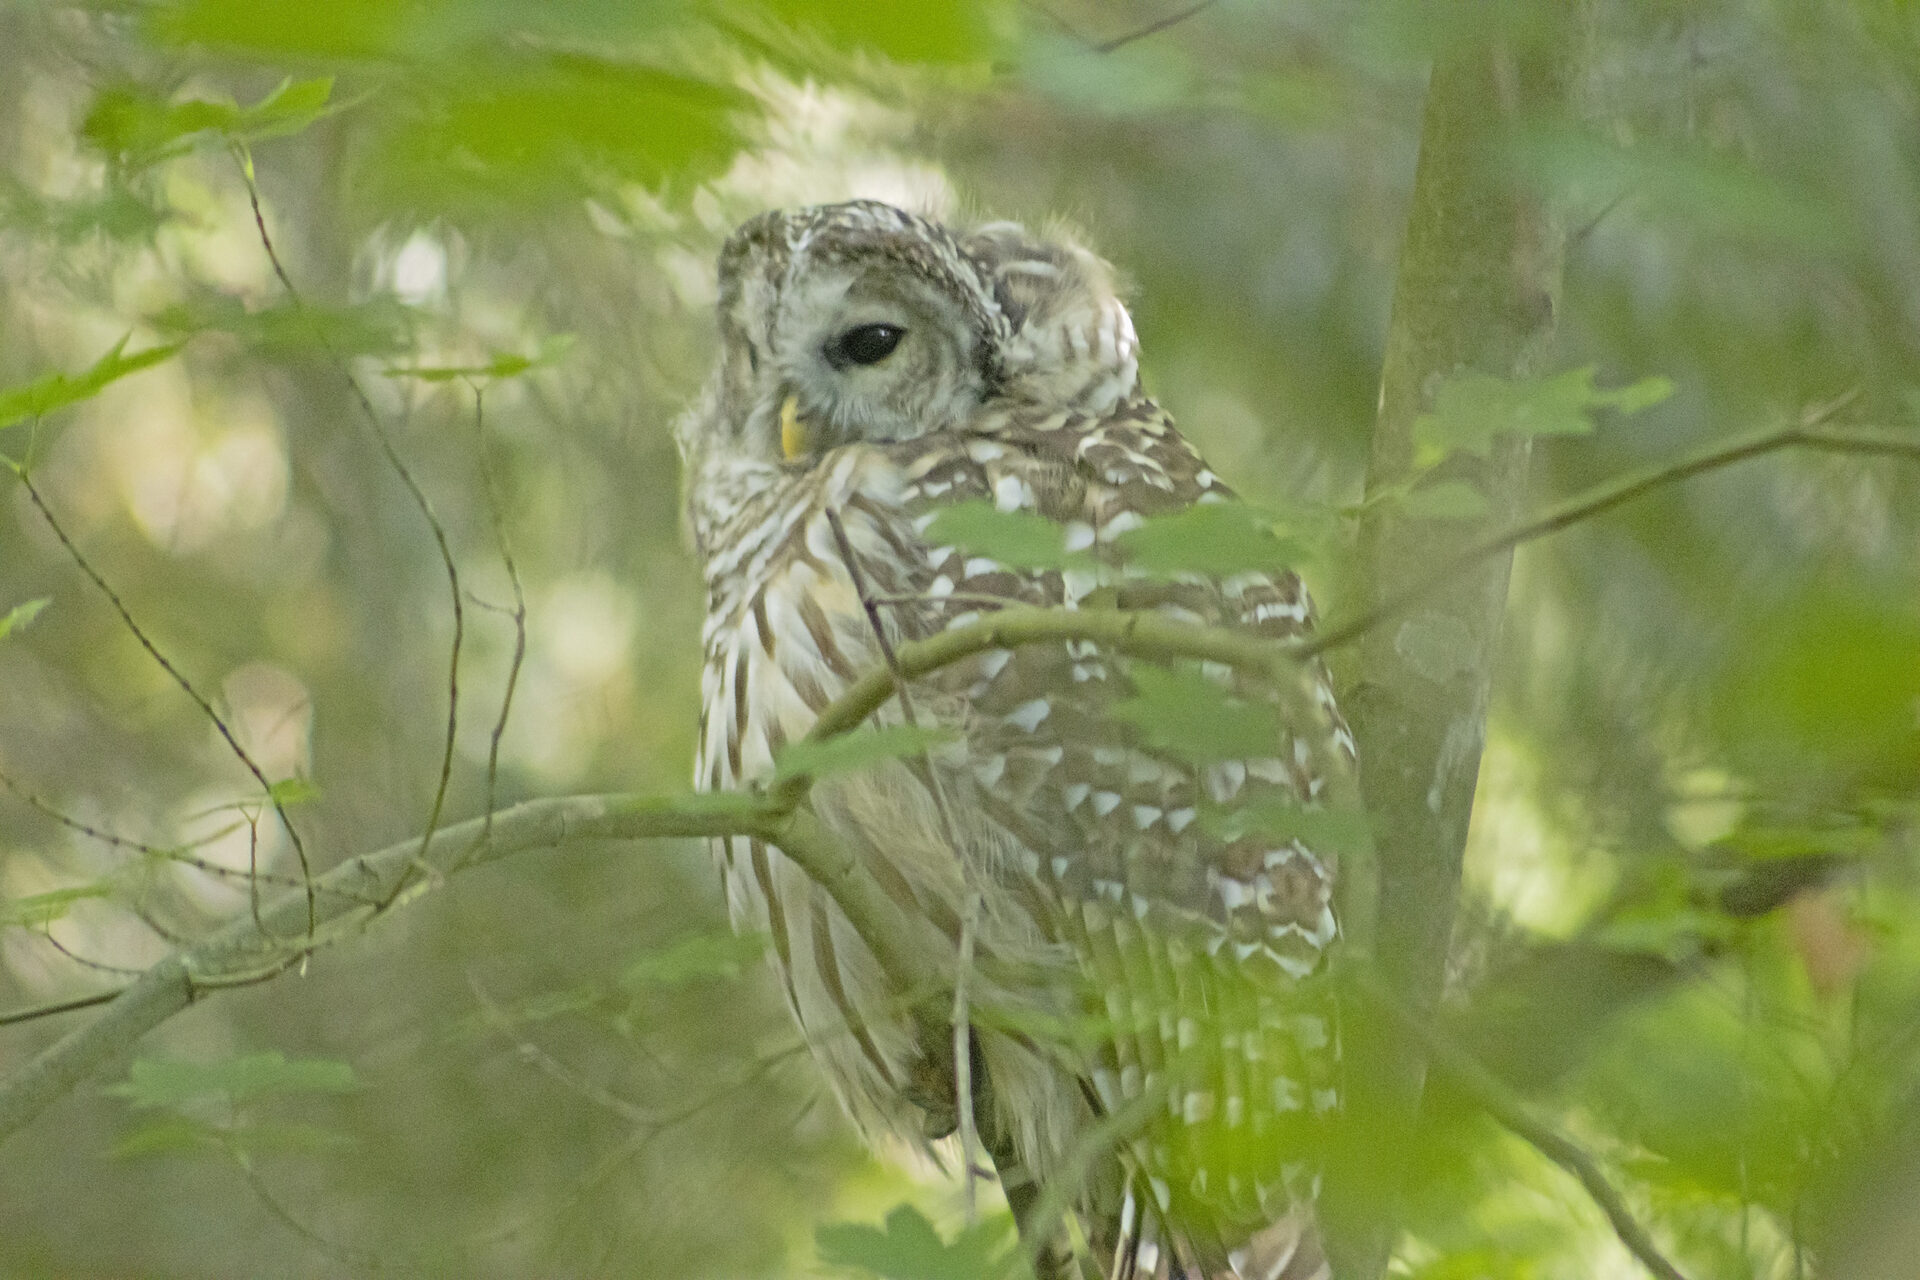 Barred Owl, August 31, 2021